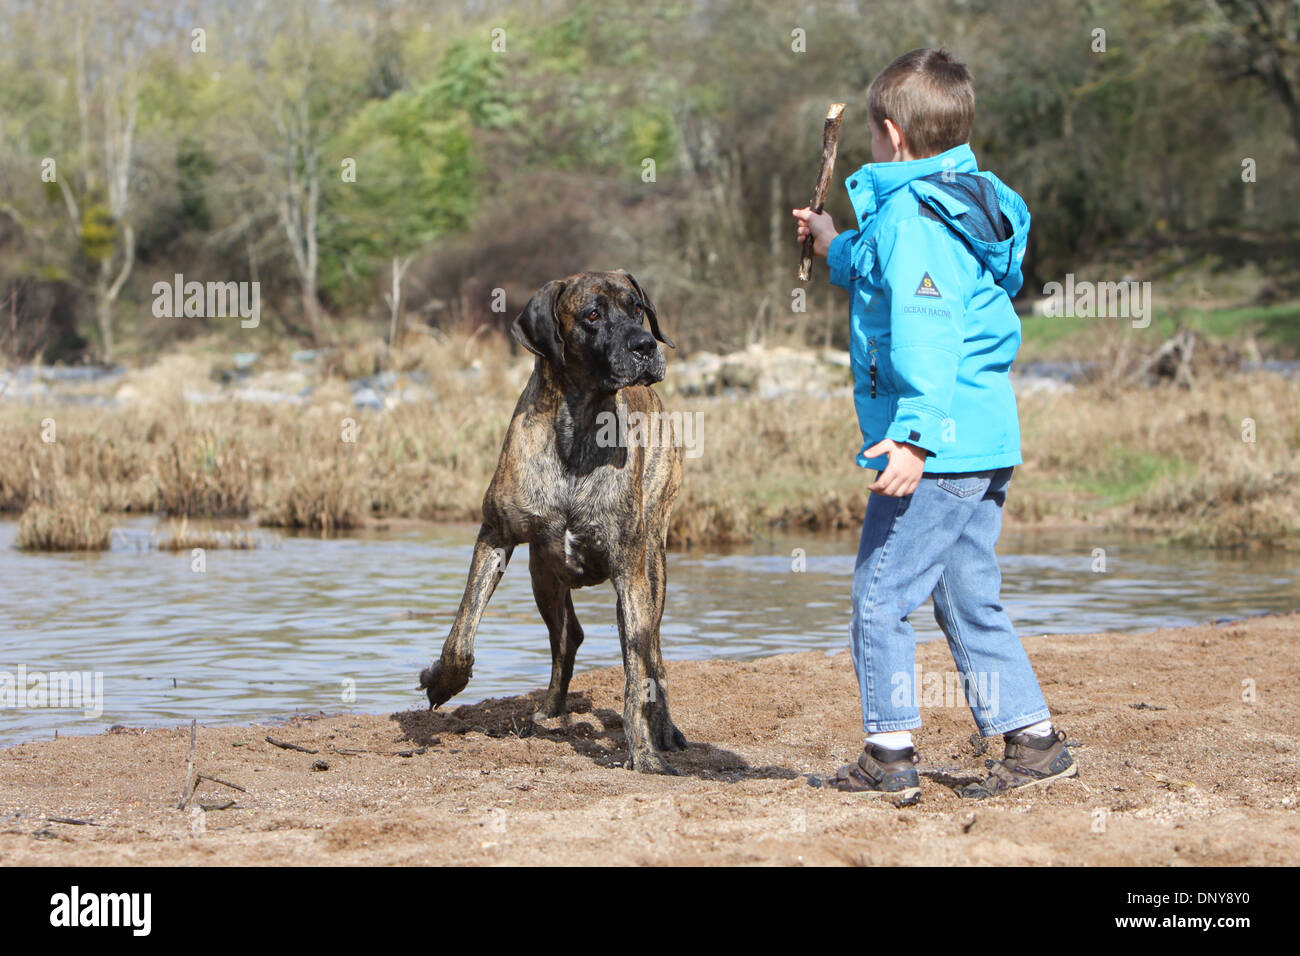 Dog Great Dane / Deutsche Dogge adult and a boy - Stock Image